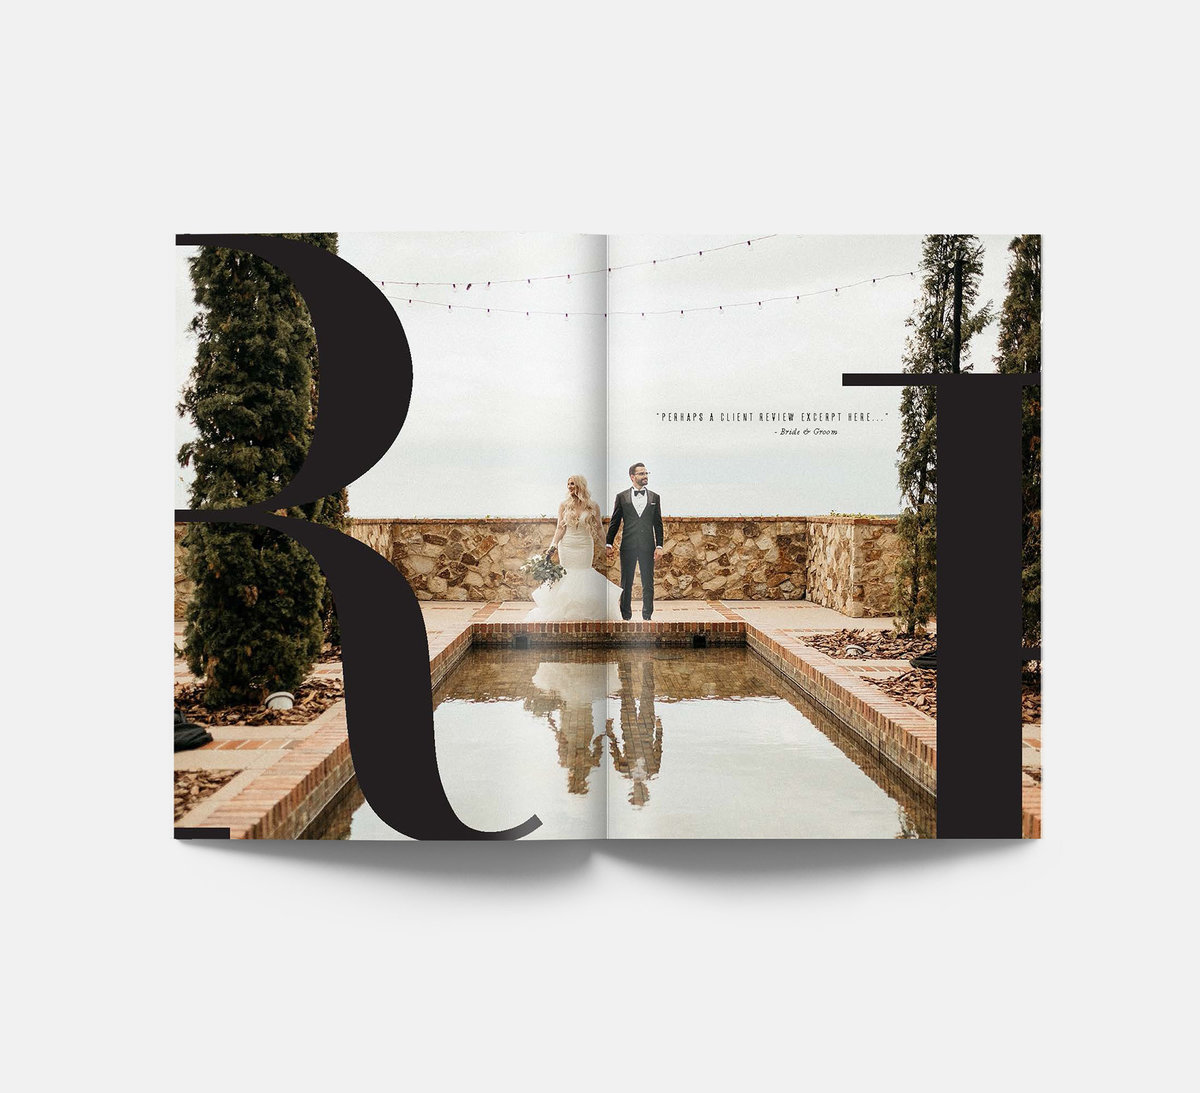 RE_Luxury_WelcomeMagazineSpread_LeslieVega